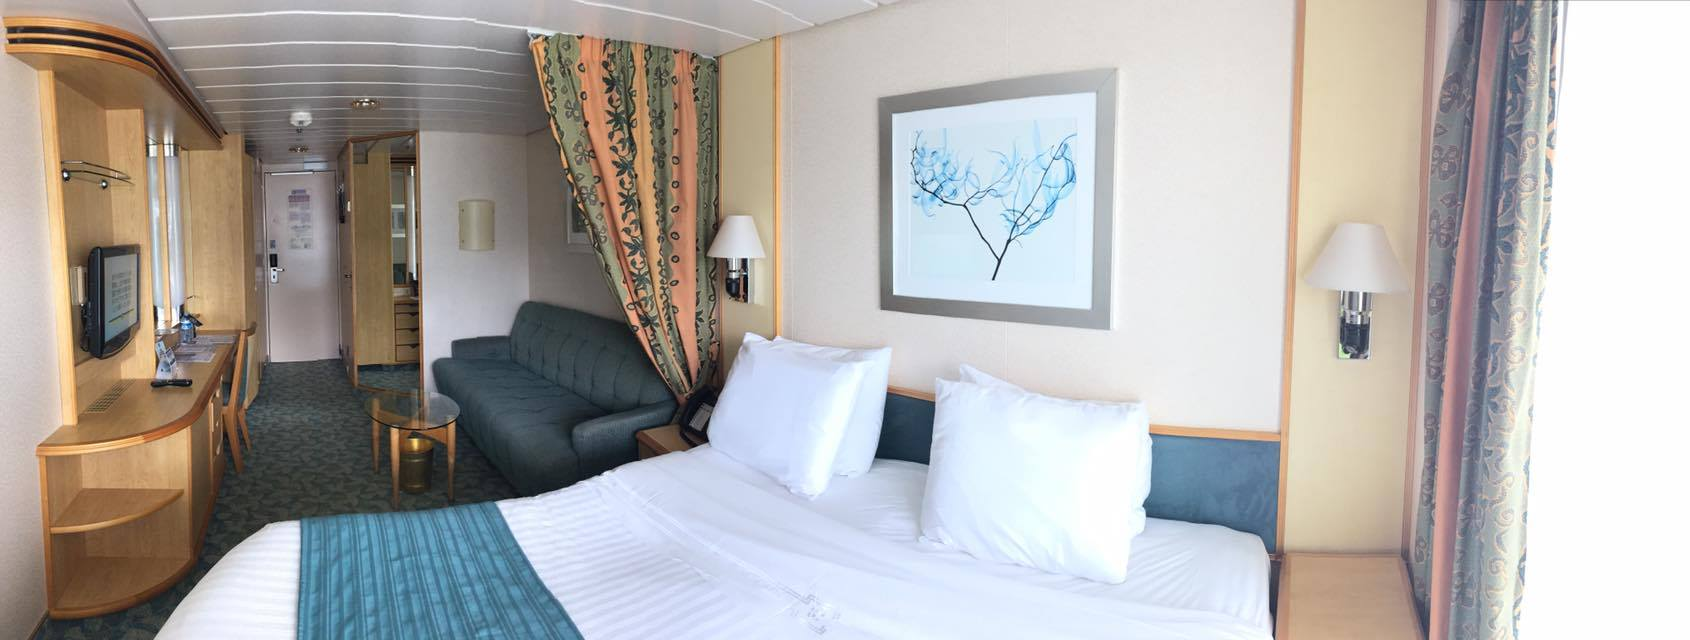 Freedom of the seas renovations 2015 - Independence Of The Seas Category D3 Balcony Stateroom Photo Tour